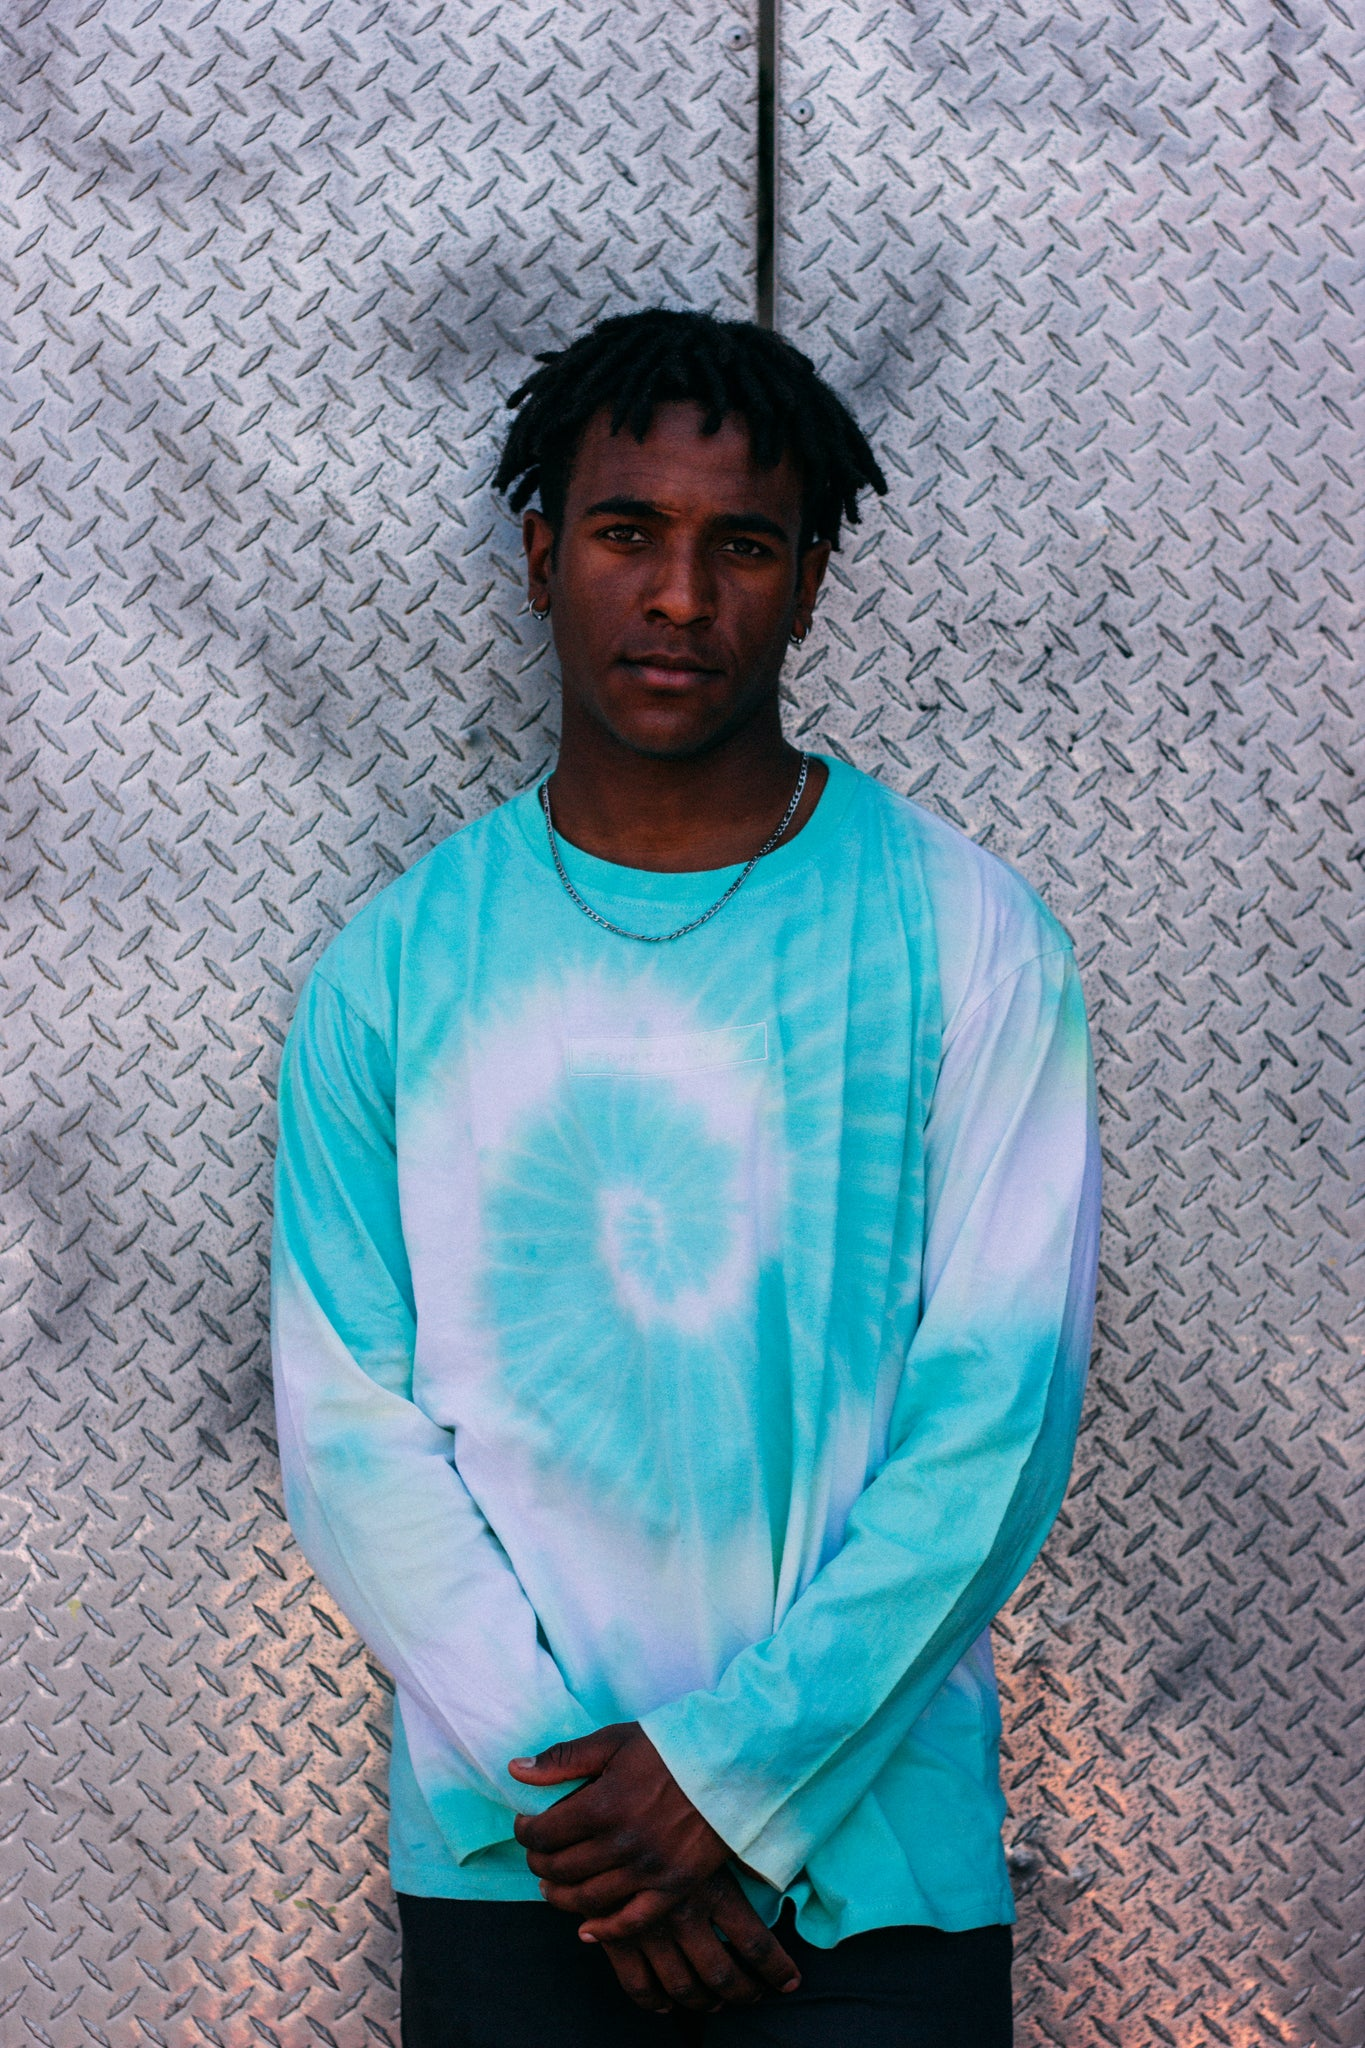 Long Green Tie-Dye tee